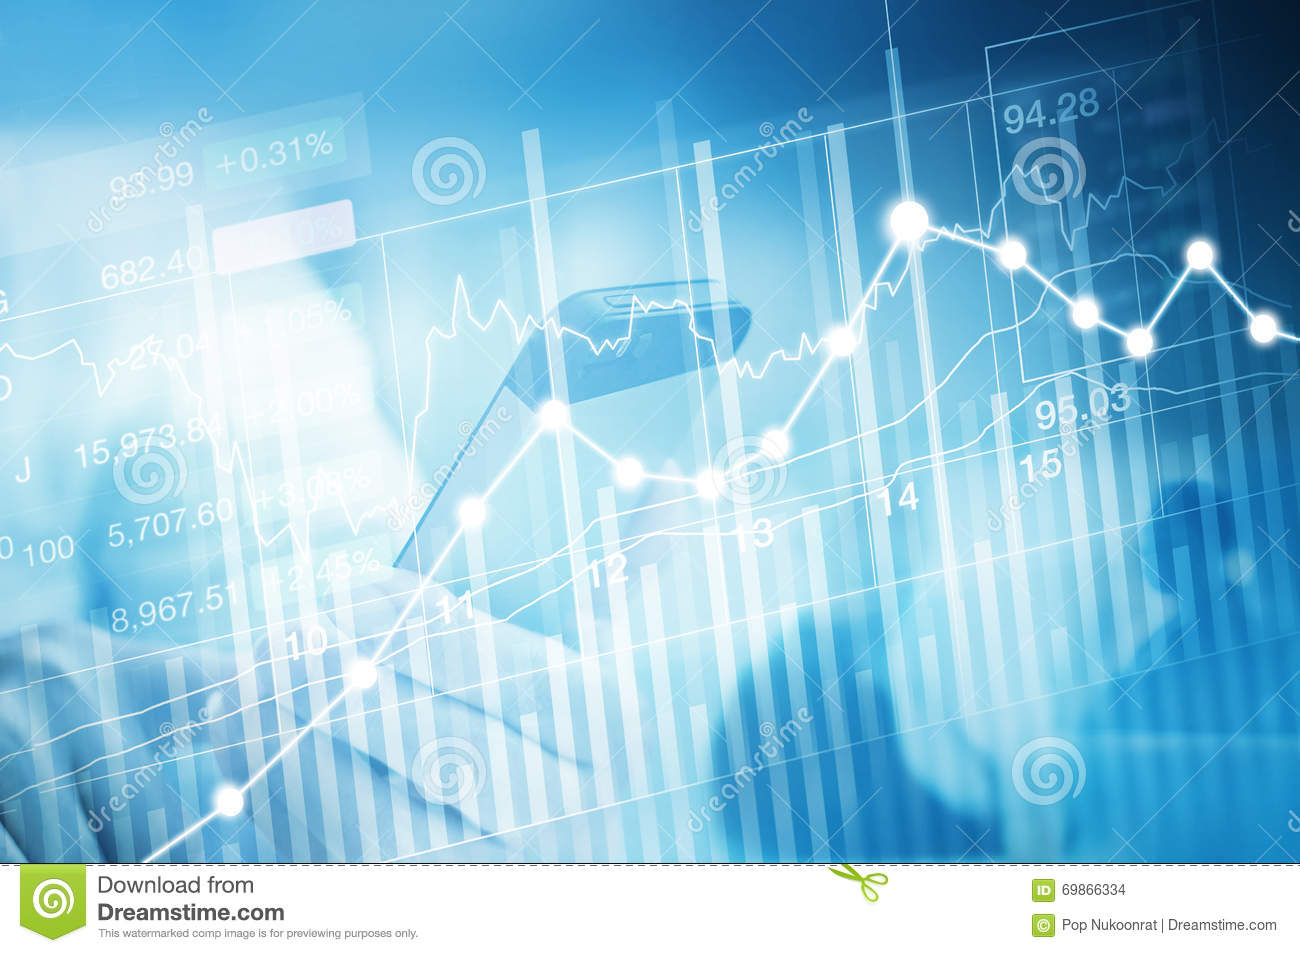 Stock market investment trading, candle stick graph chart